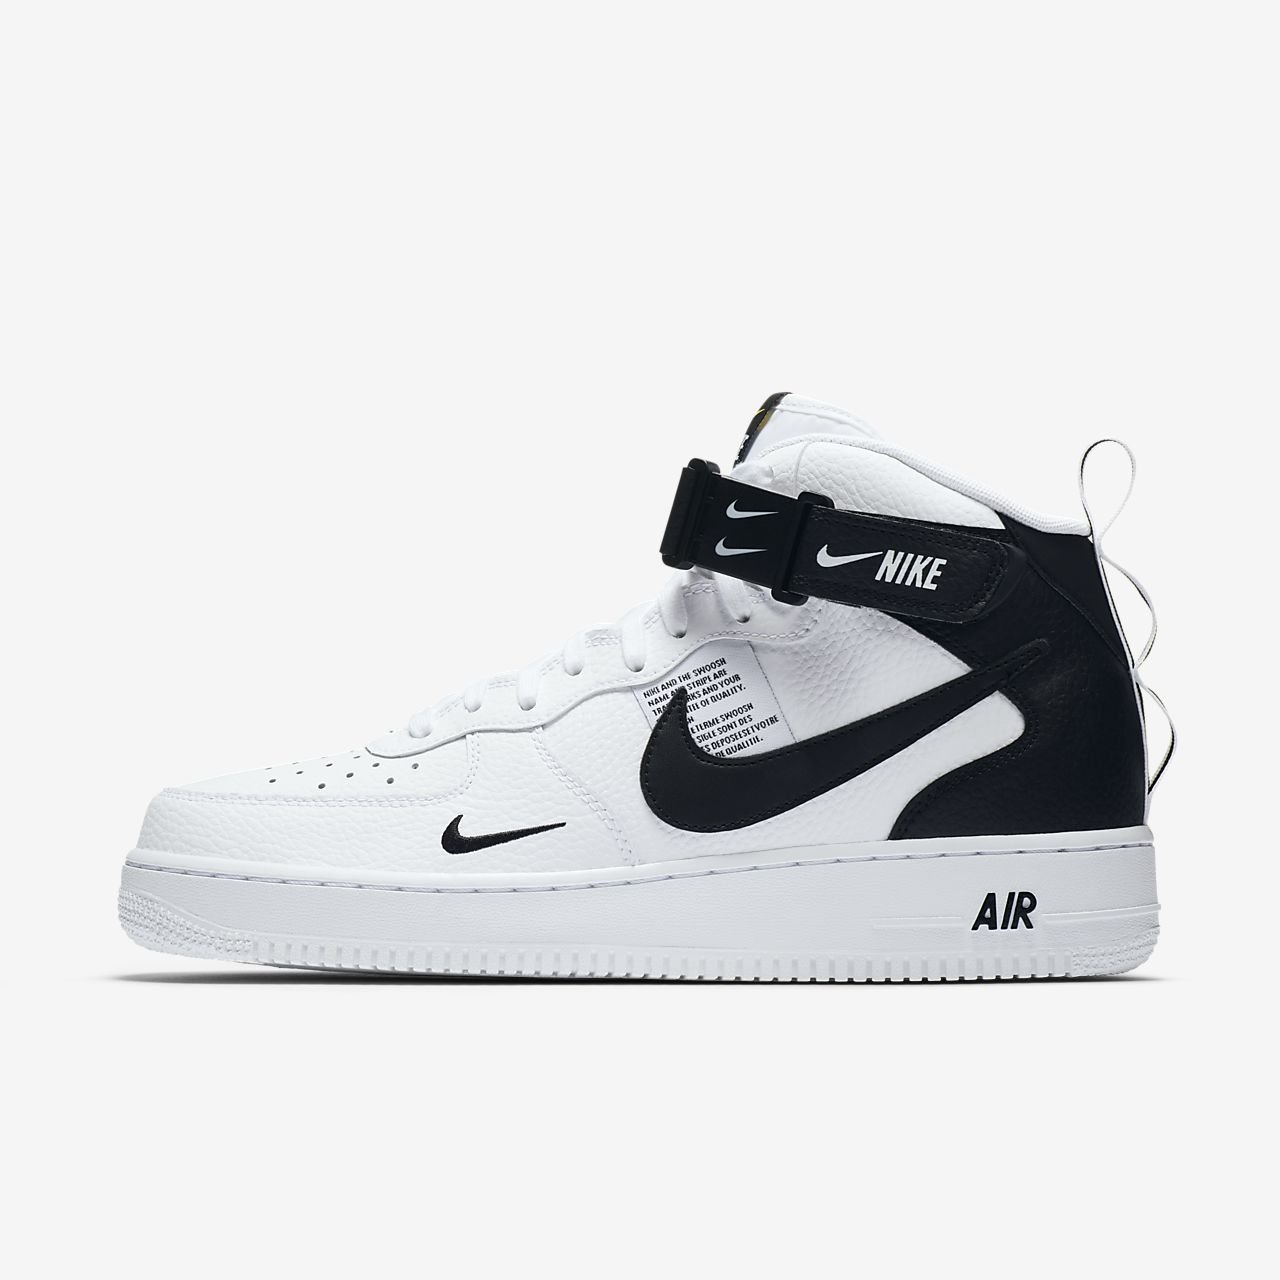 b1d26c67c65f2e Nike Air Force 1 07 Mid LV8 Men s Shoe. Nike.com AU